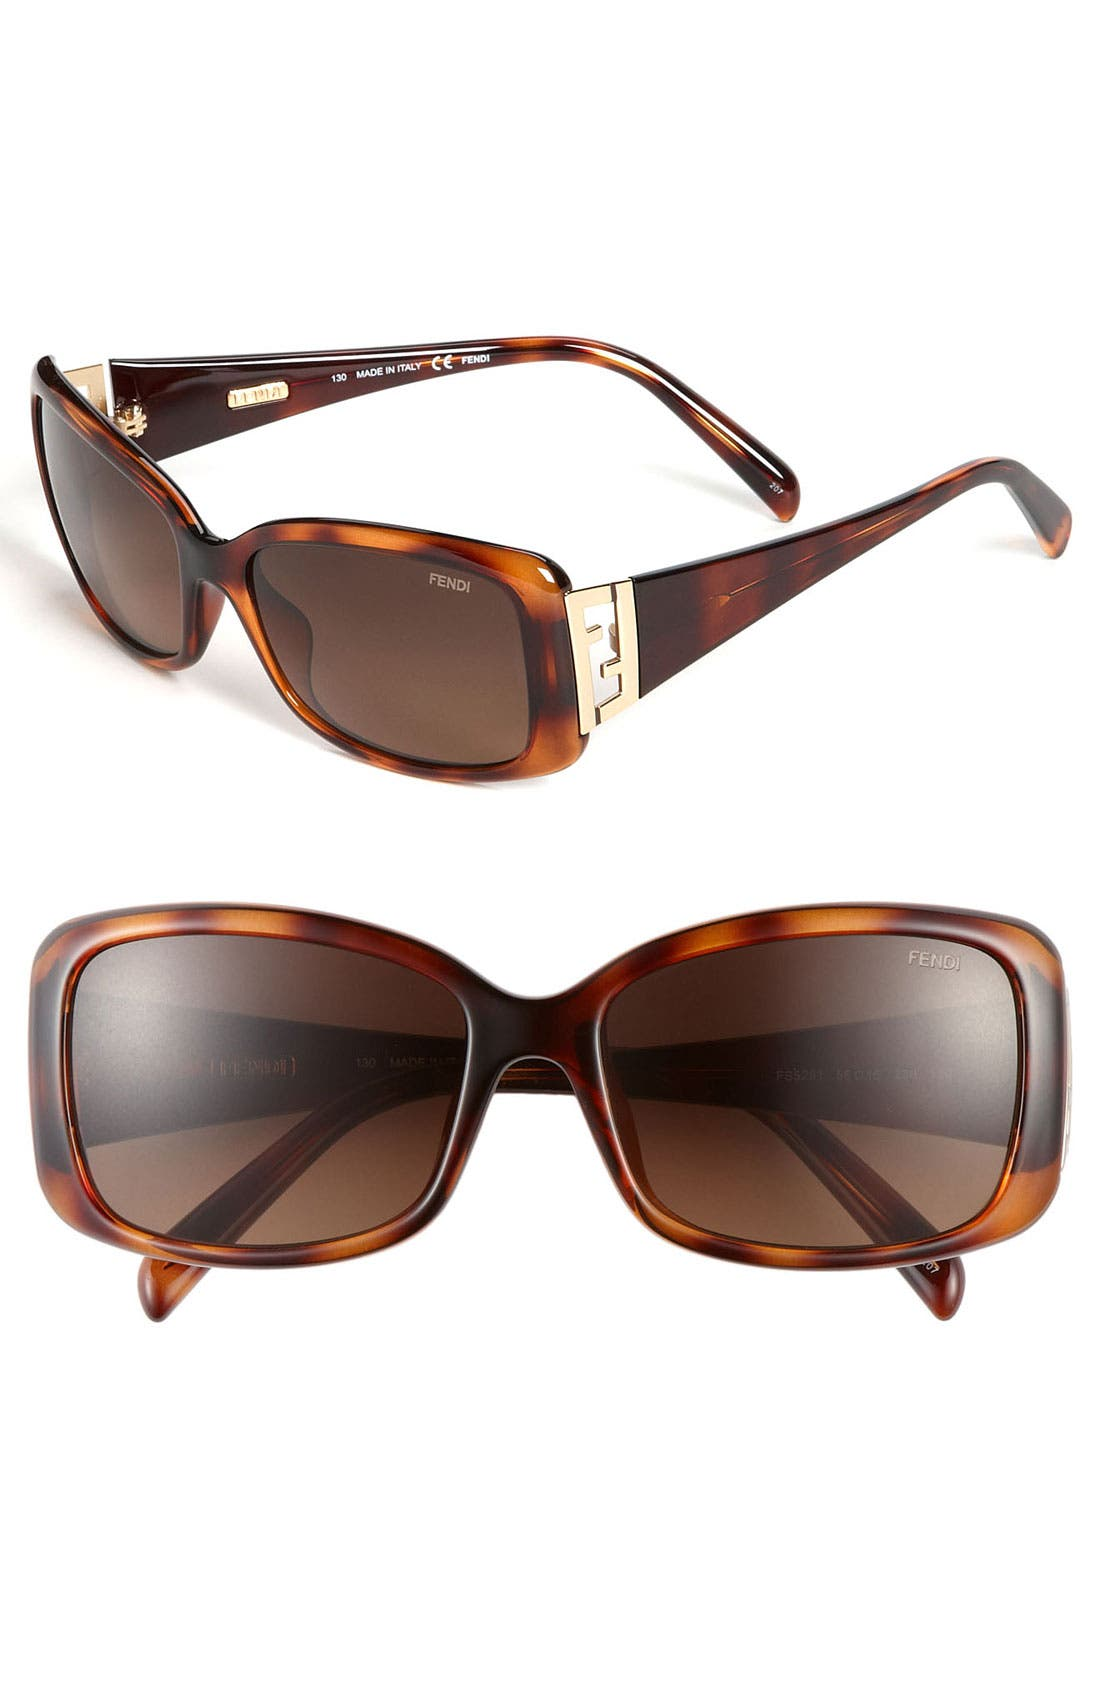 Main Image - Fendi 'Double F' 56mm Sunglasses